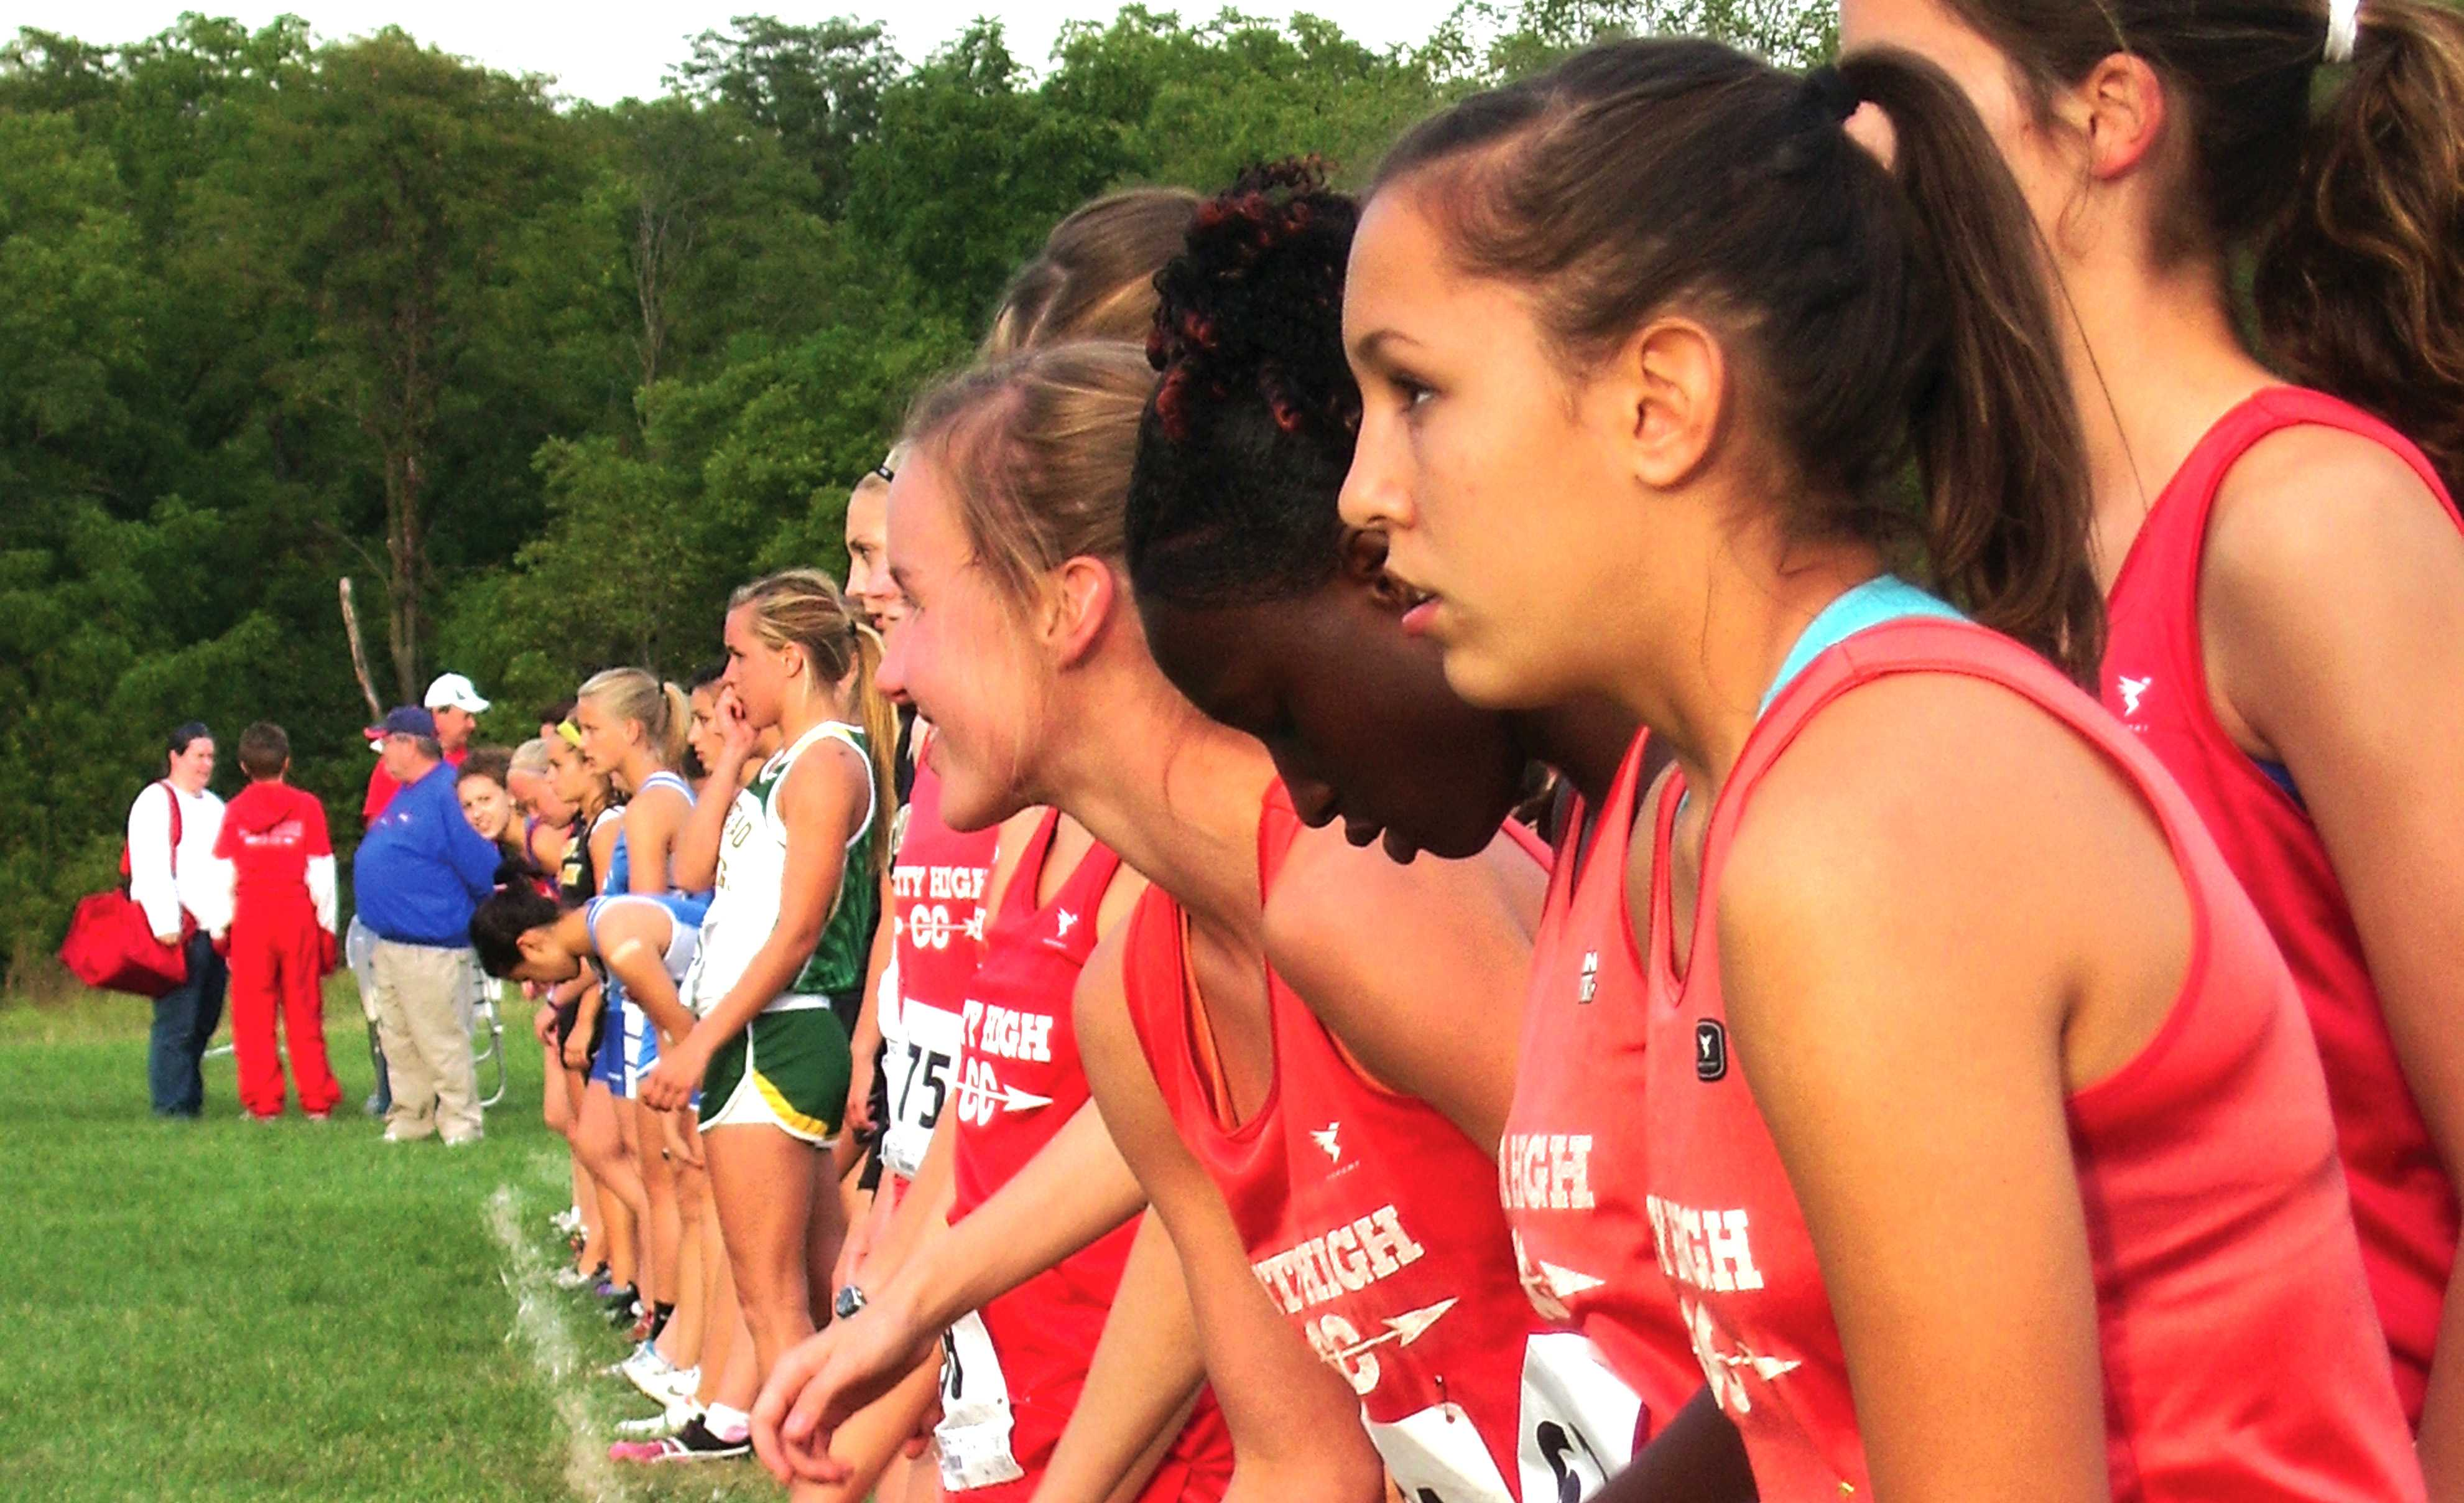 XC girls line up for the start of a race Photo by The Little Hawk